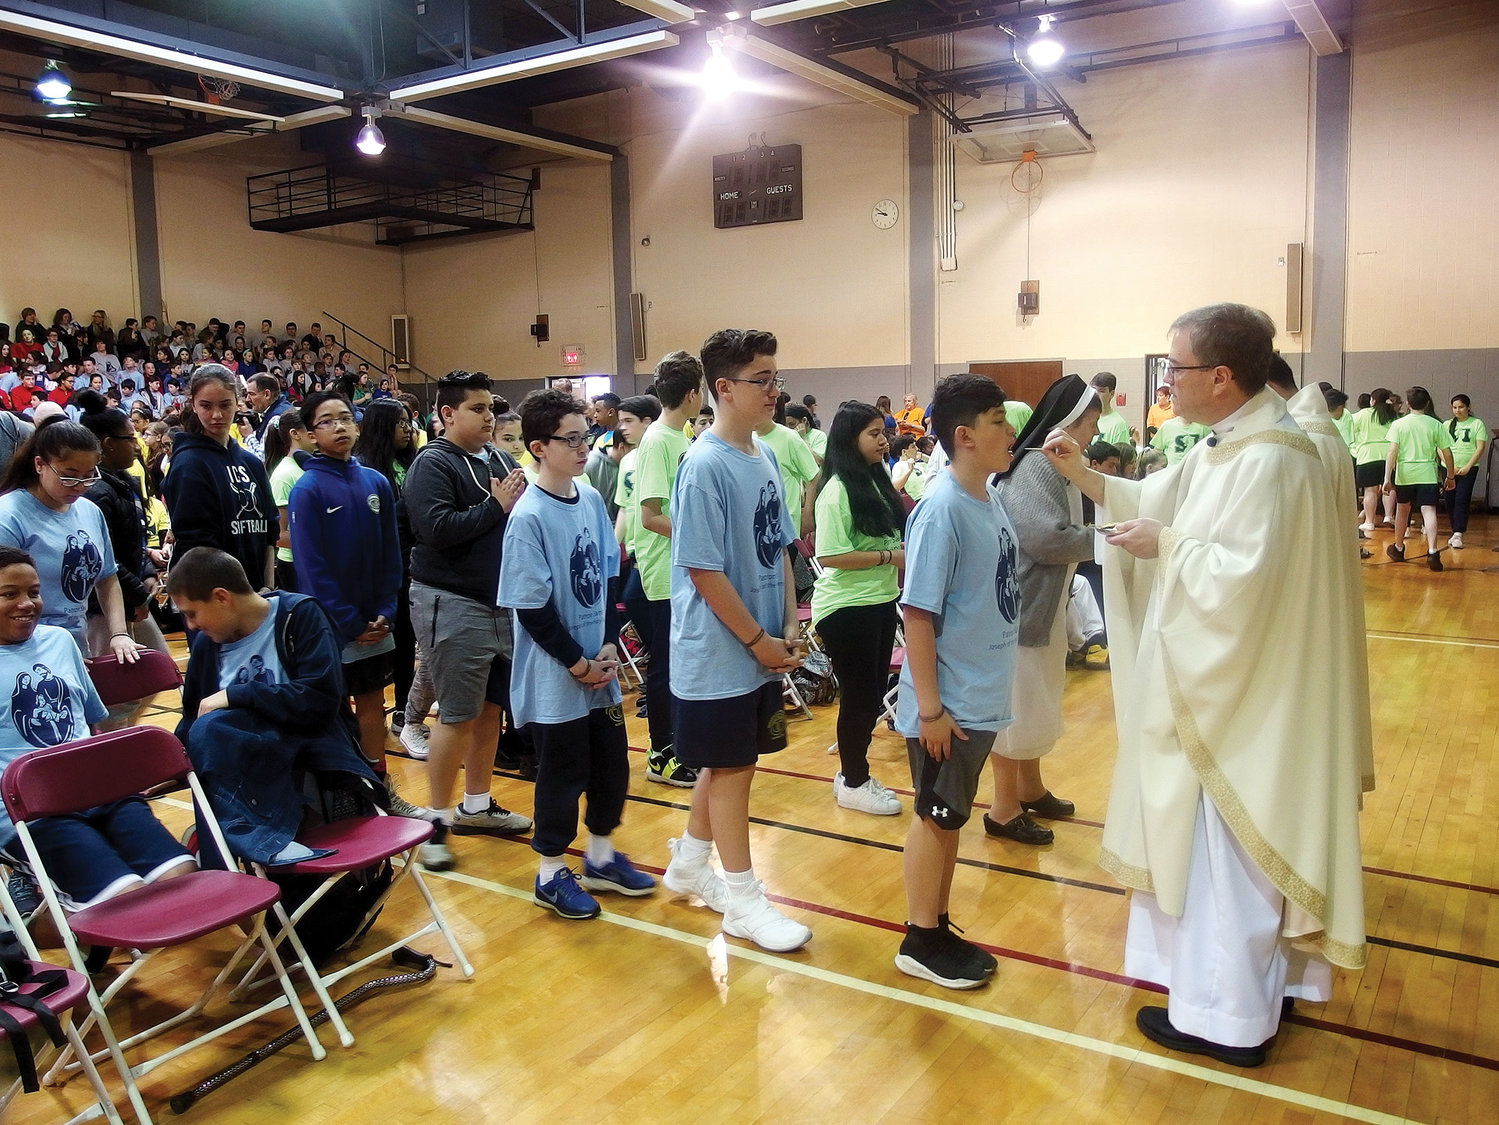 Father Michael McLoughlin, pastor of St. Columba parish, Hopewell Junction, and celebrant of the field day liturgy, distributes Holy Communion in the seminary gym.